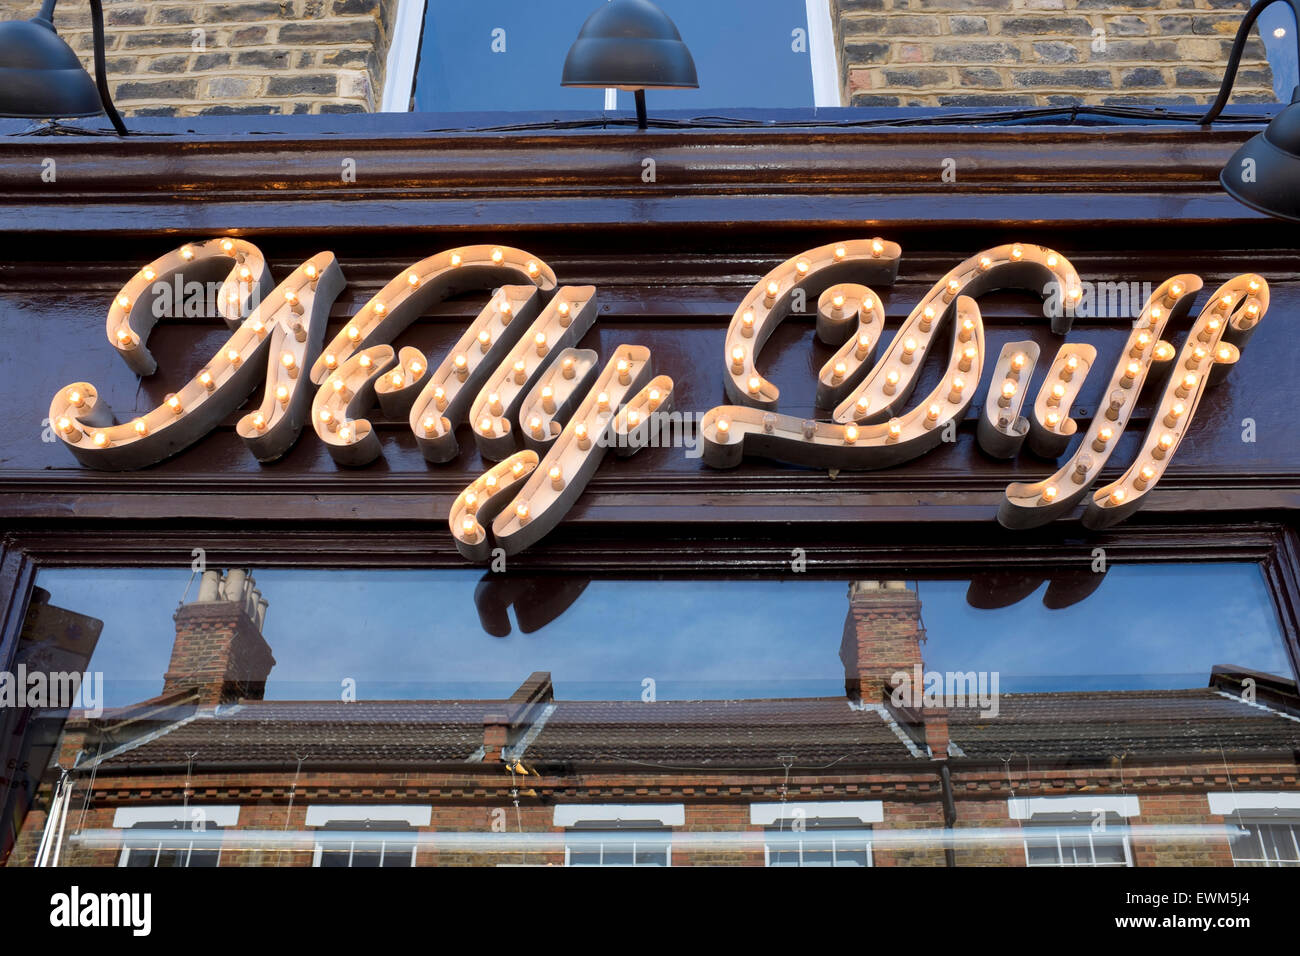 Nelly Duff Shop Sign Columbia Road Market London - Stock Image